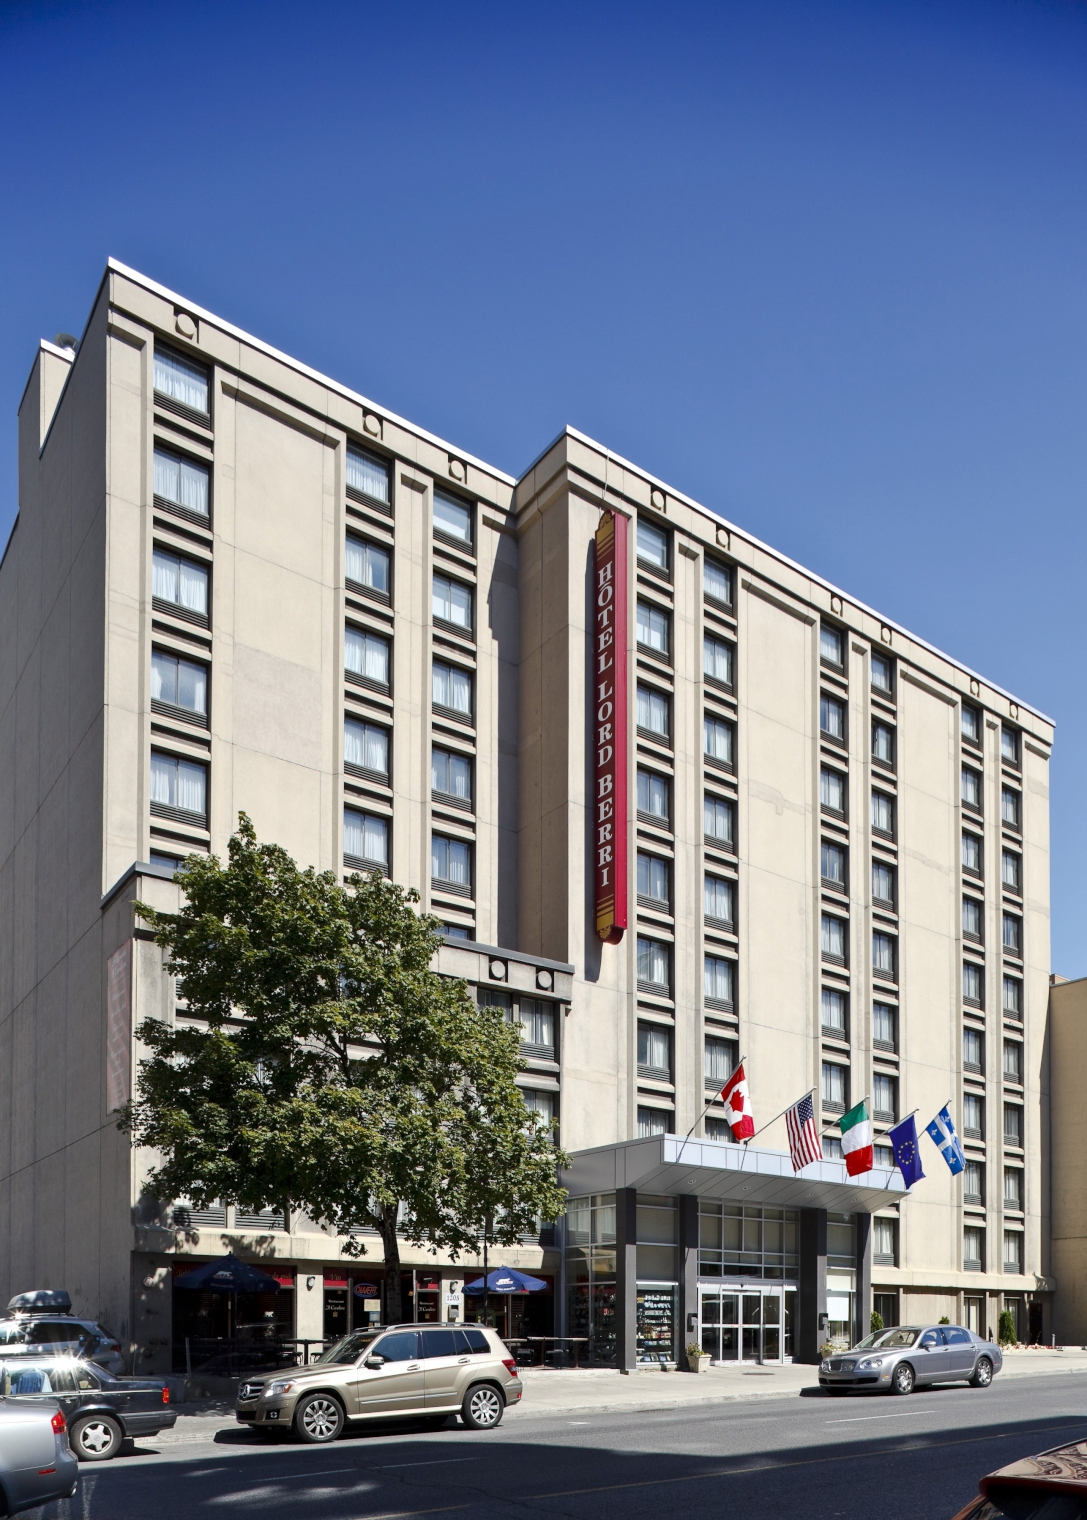 Old Montreal Hotels With Free Parking